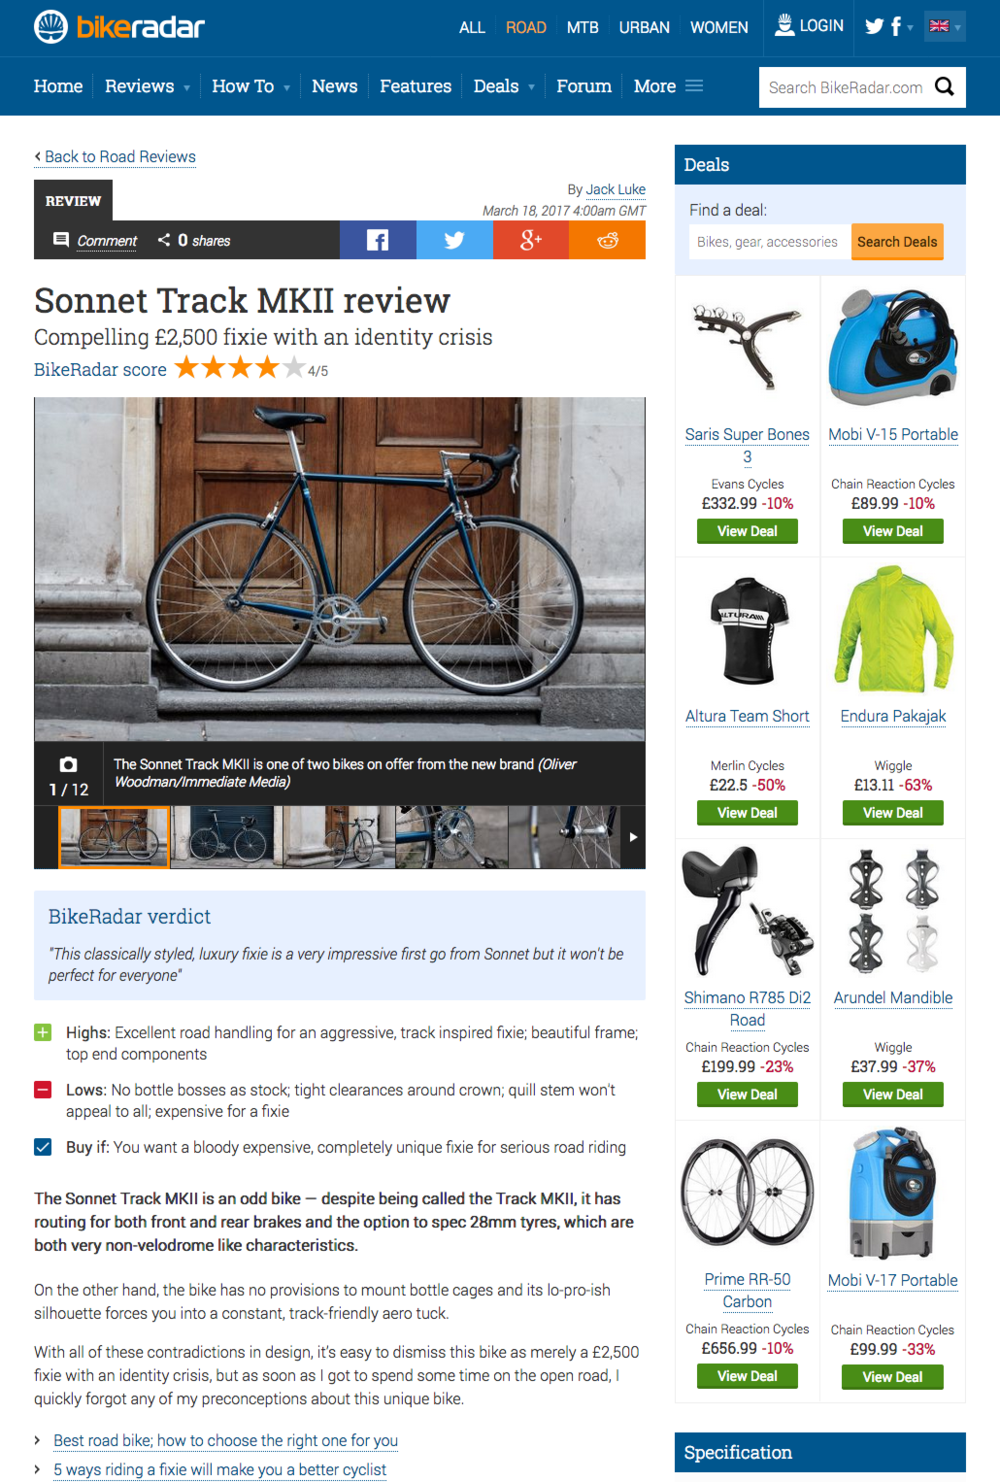 Bike Radar: Sonnet MkII Track bike reviewed in the Road bike section, March 18th, 2017  http://bit.ly/2nCWKyH